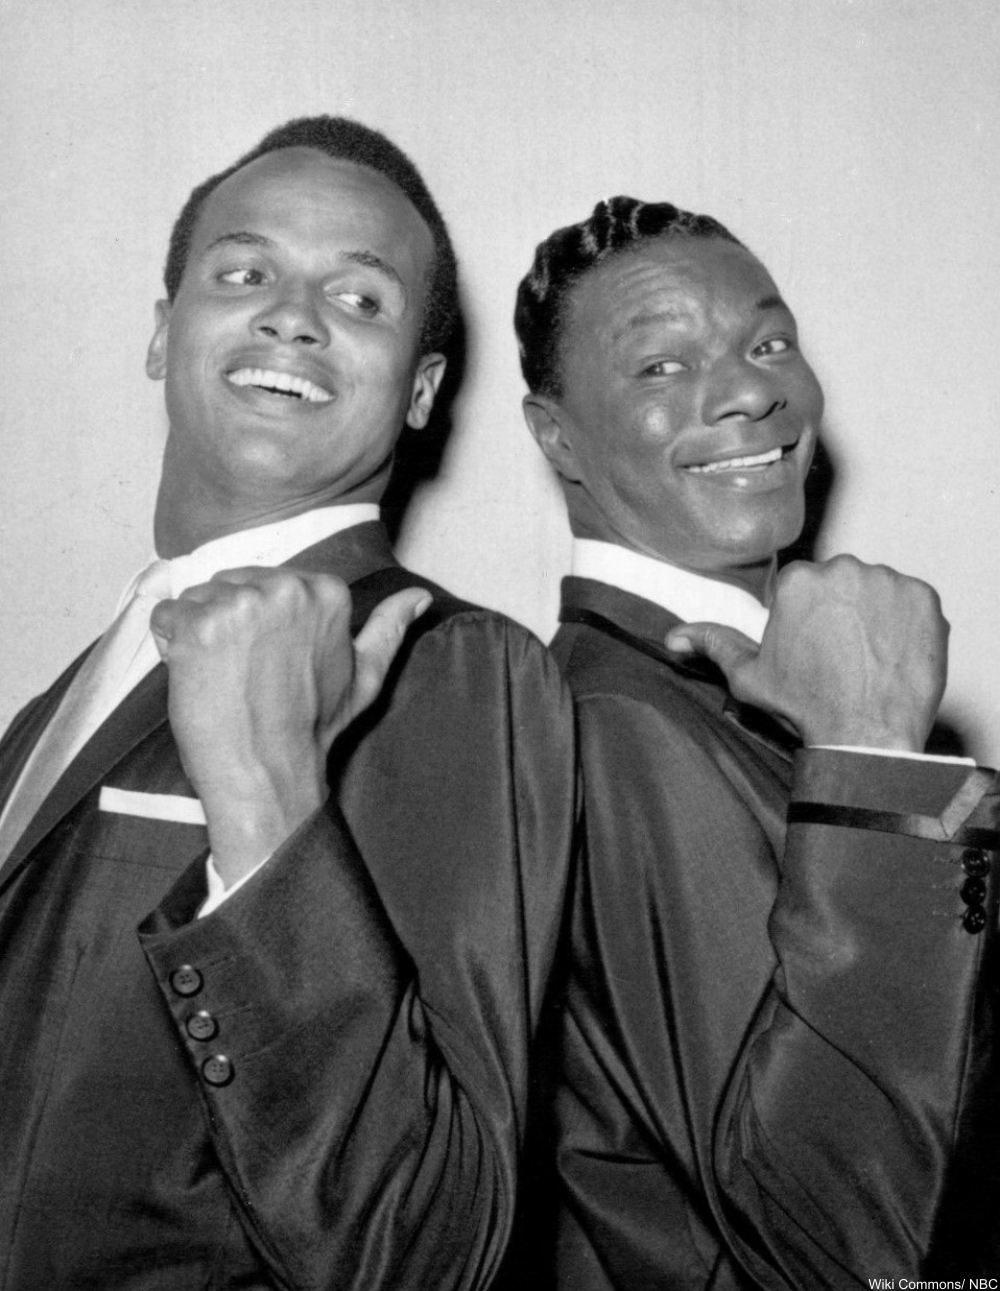 two handsome fellas, Nat King Cole and Harry Belafonte